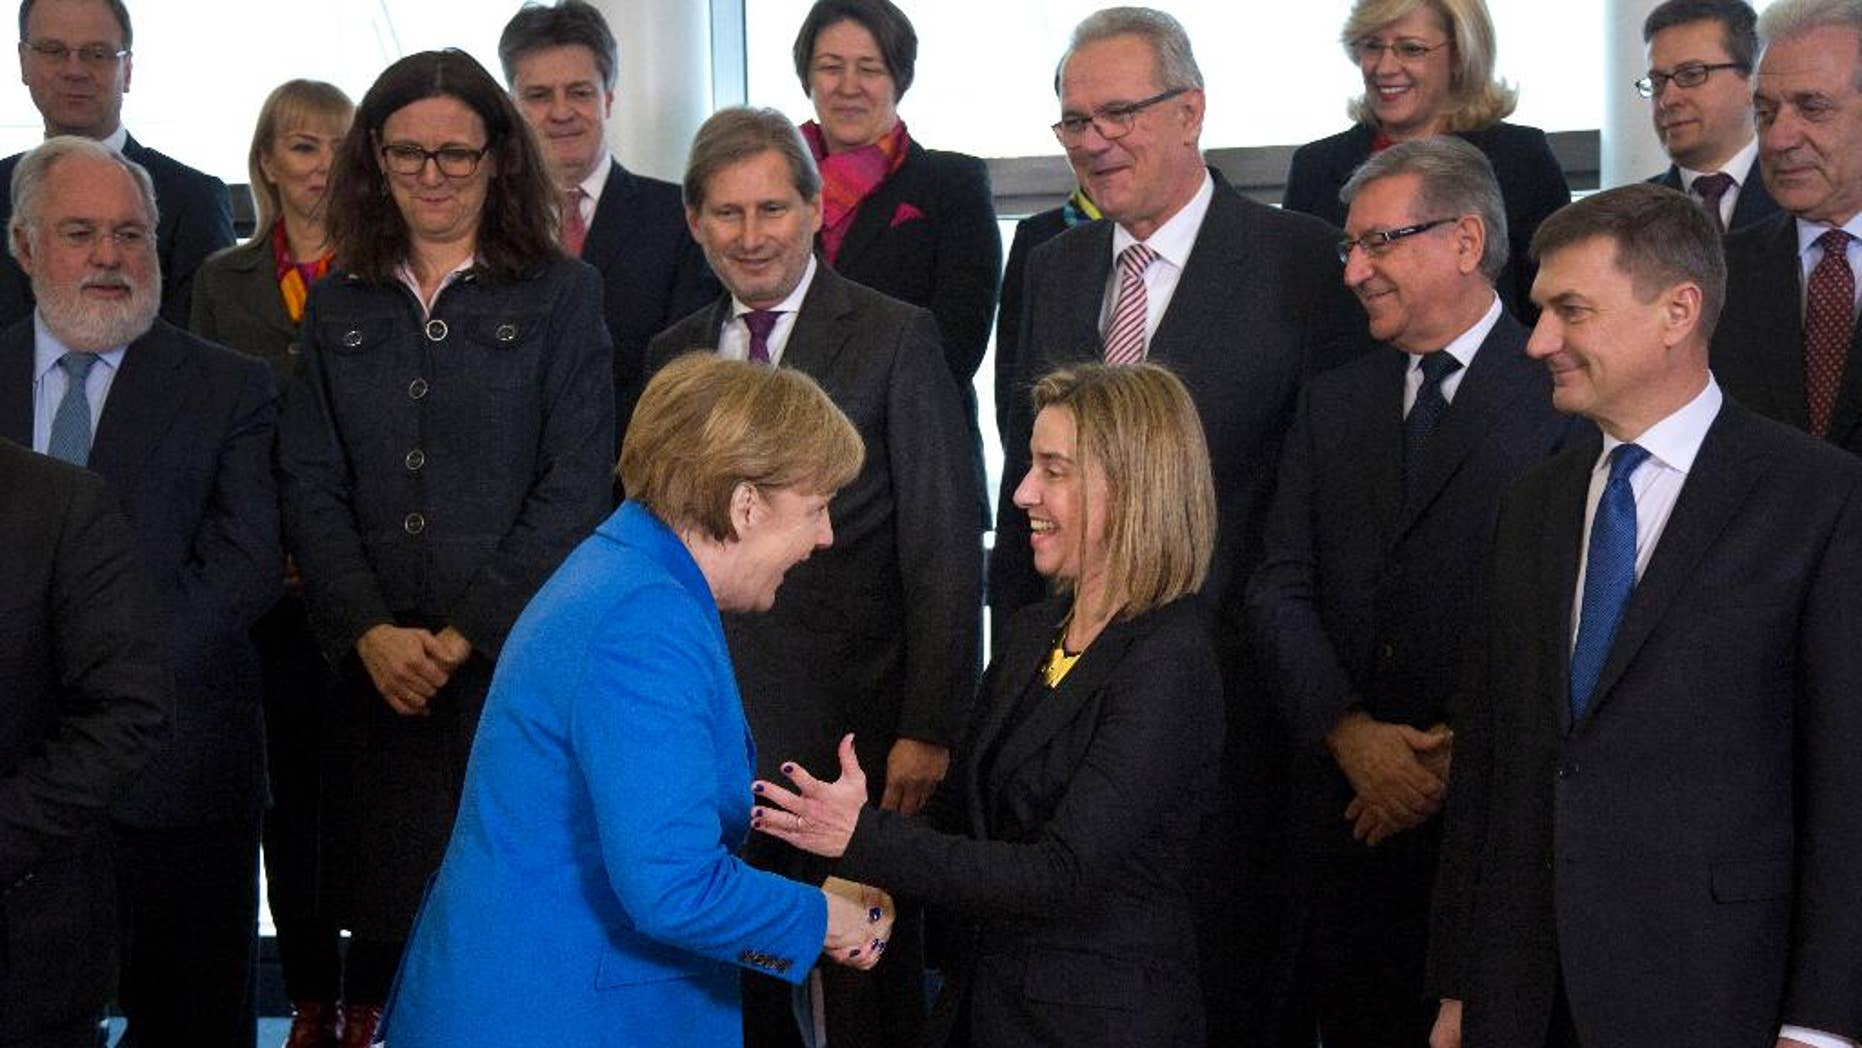 German Chancellor Angela Merkel, center left, is greeted by European Union High Representative Federica Mogherini, center right, during during a group photo of the College of Commissioners at EU headquarters in Brussels on Wednesday, March 4, 2015. (AP Photo/Virginia Mayo)